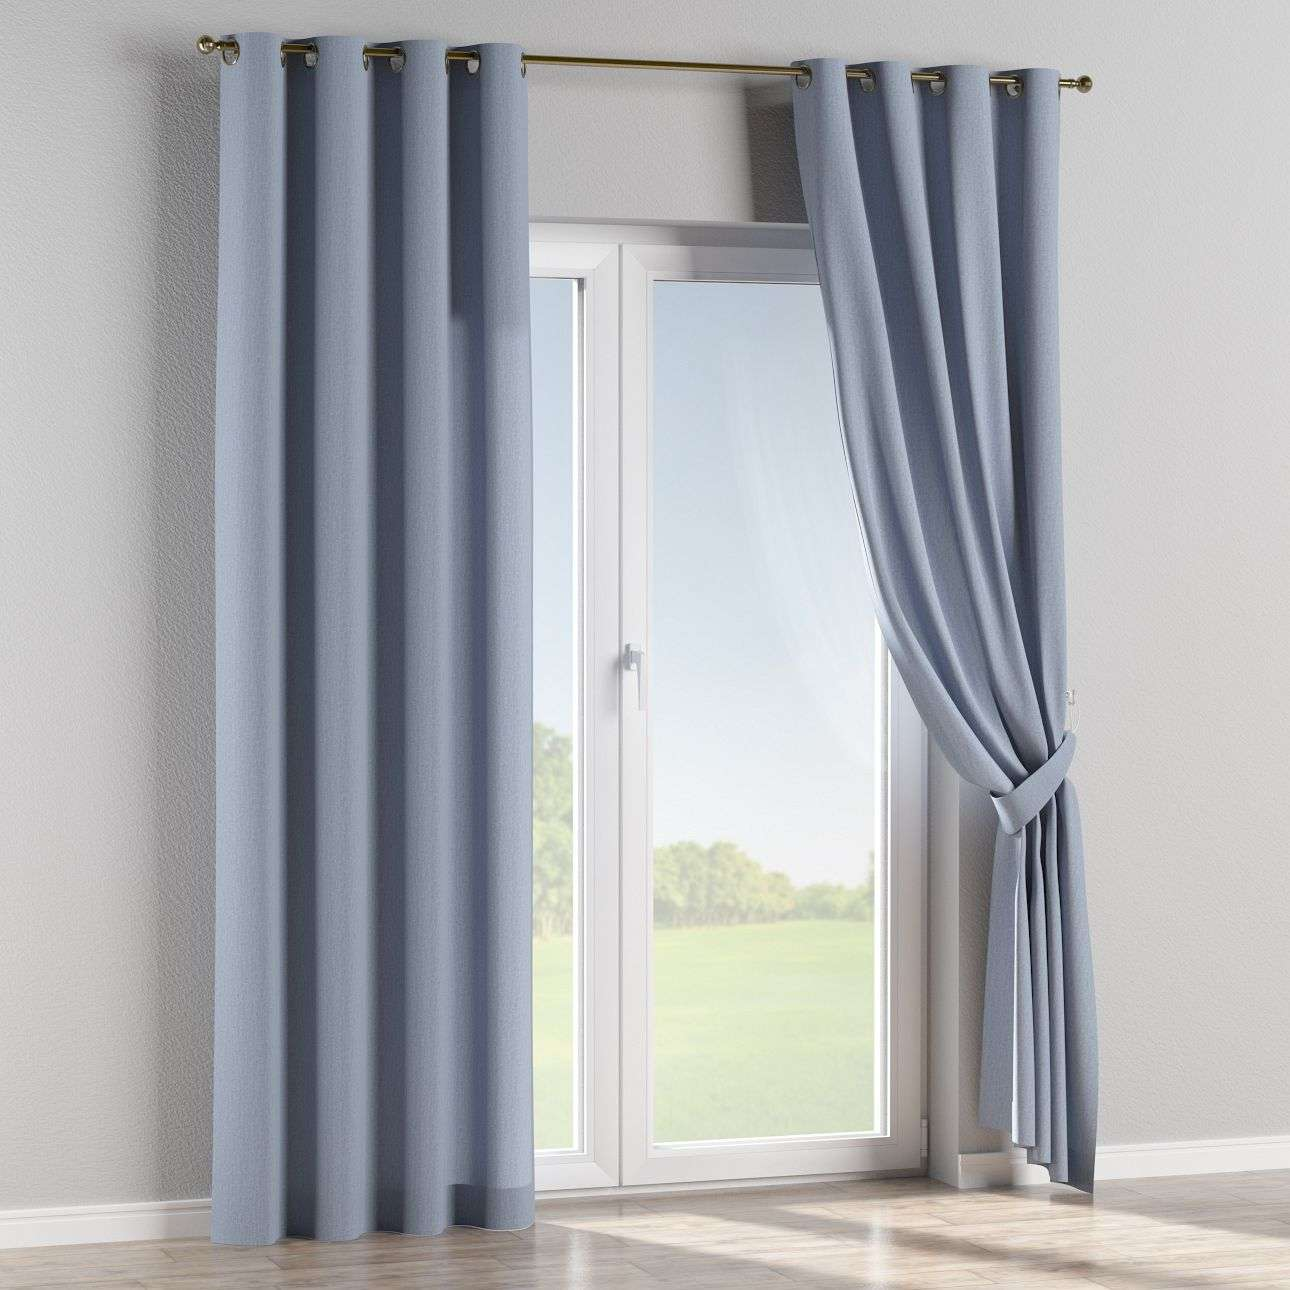 Eyelet curtains 130 × 260 cm (51 × 102 inch) in collection Chenille, fabric: 702-13